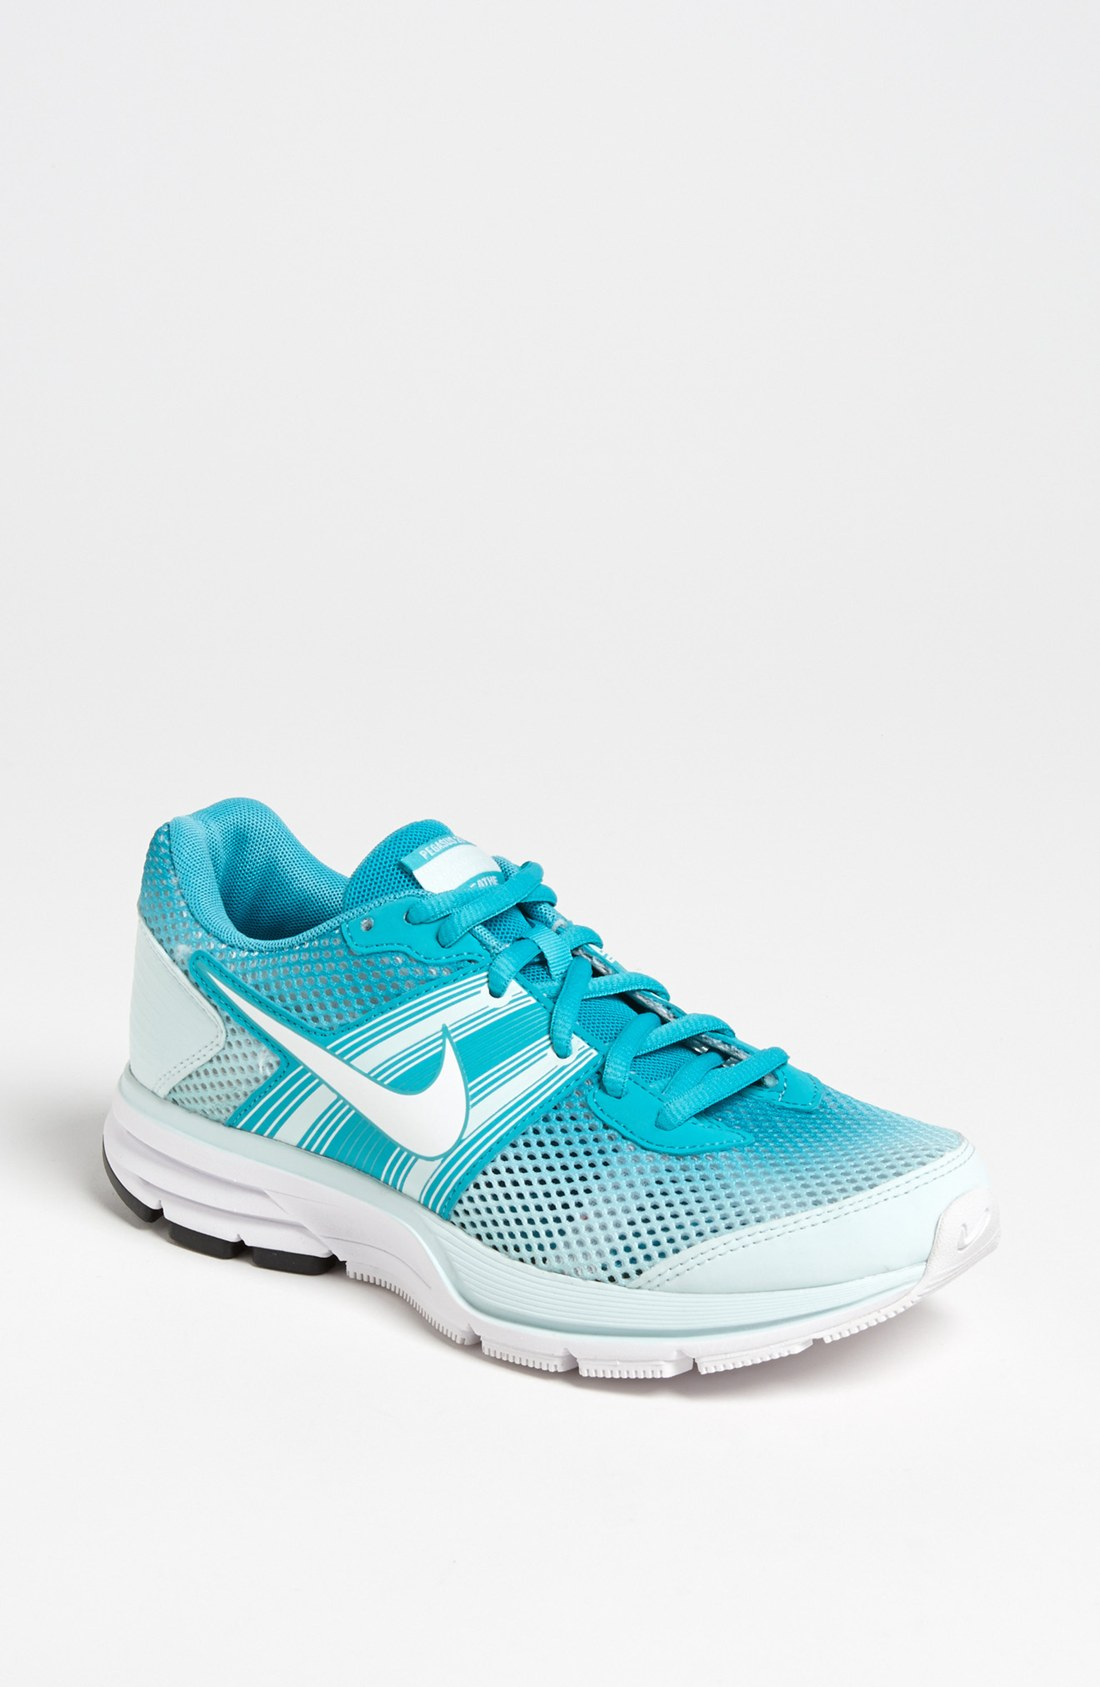 Lastest Womens Running Shoes Take Their Cue From The Workinthe  Racer Blue Total Orange Turquoise WhiteKeep Your Feet And Improve Your Stability Nike Free Turquoise Shoes With The Best Selectinike Golf Shosathe Lowest PricesSfeatuthis